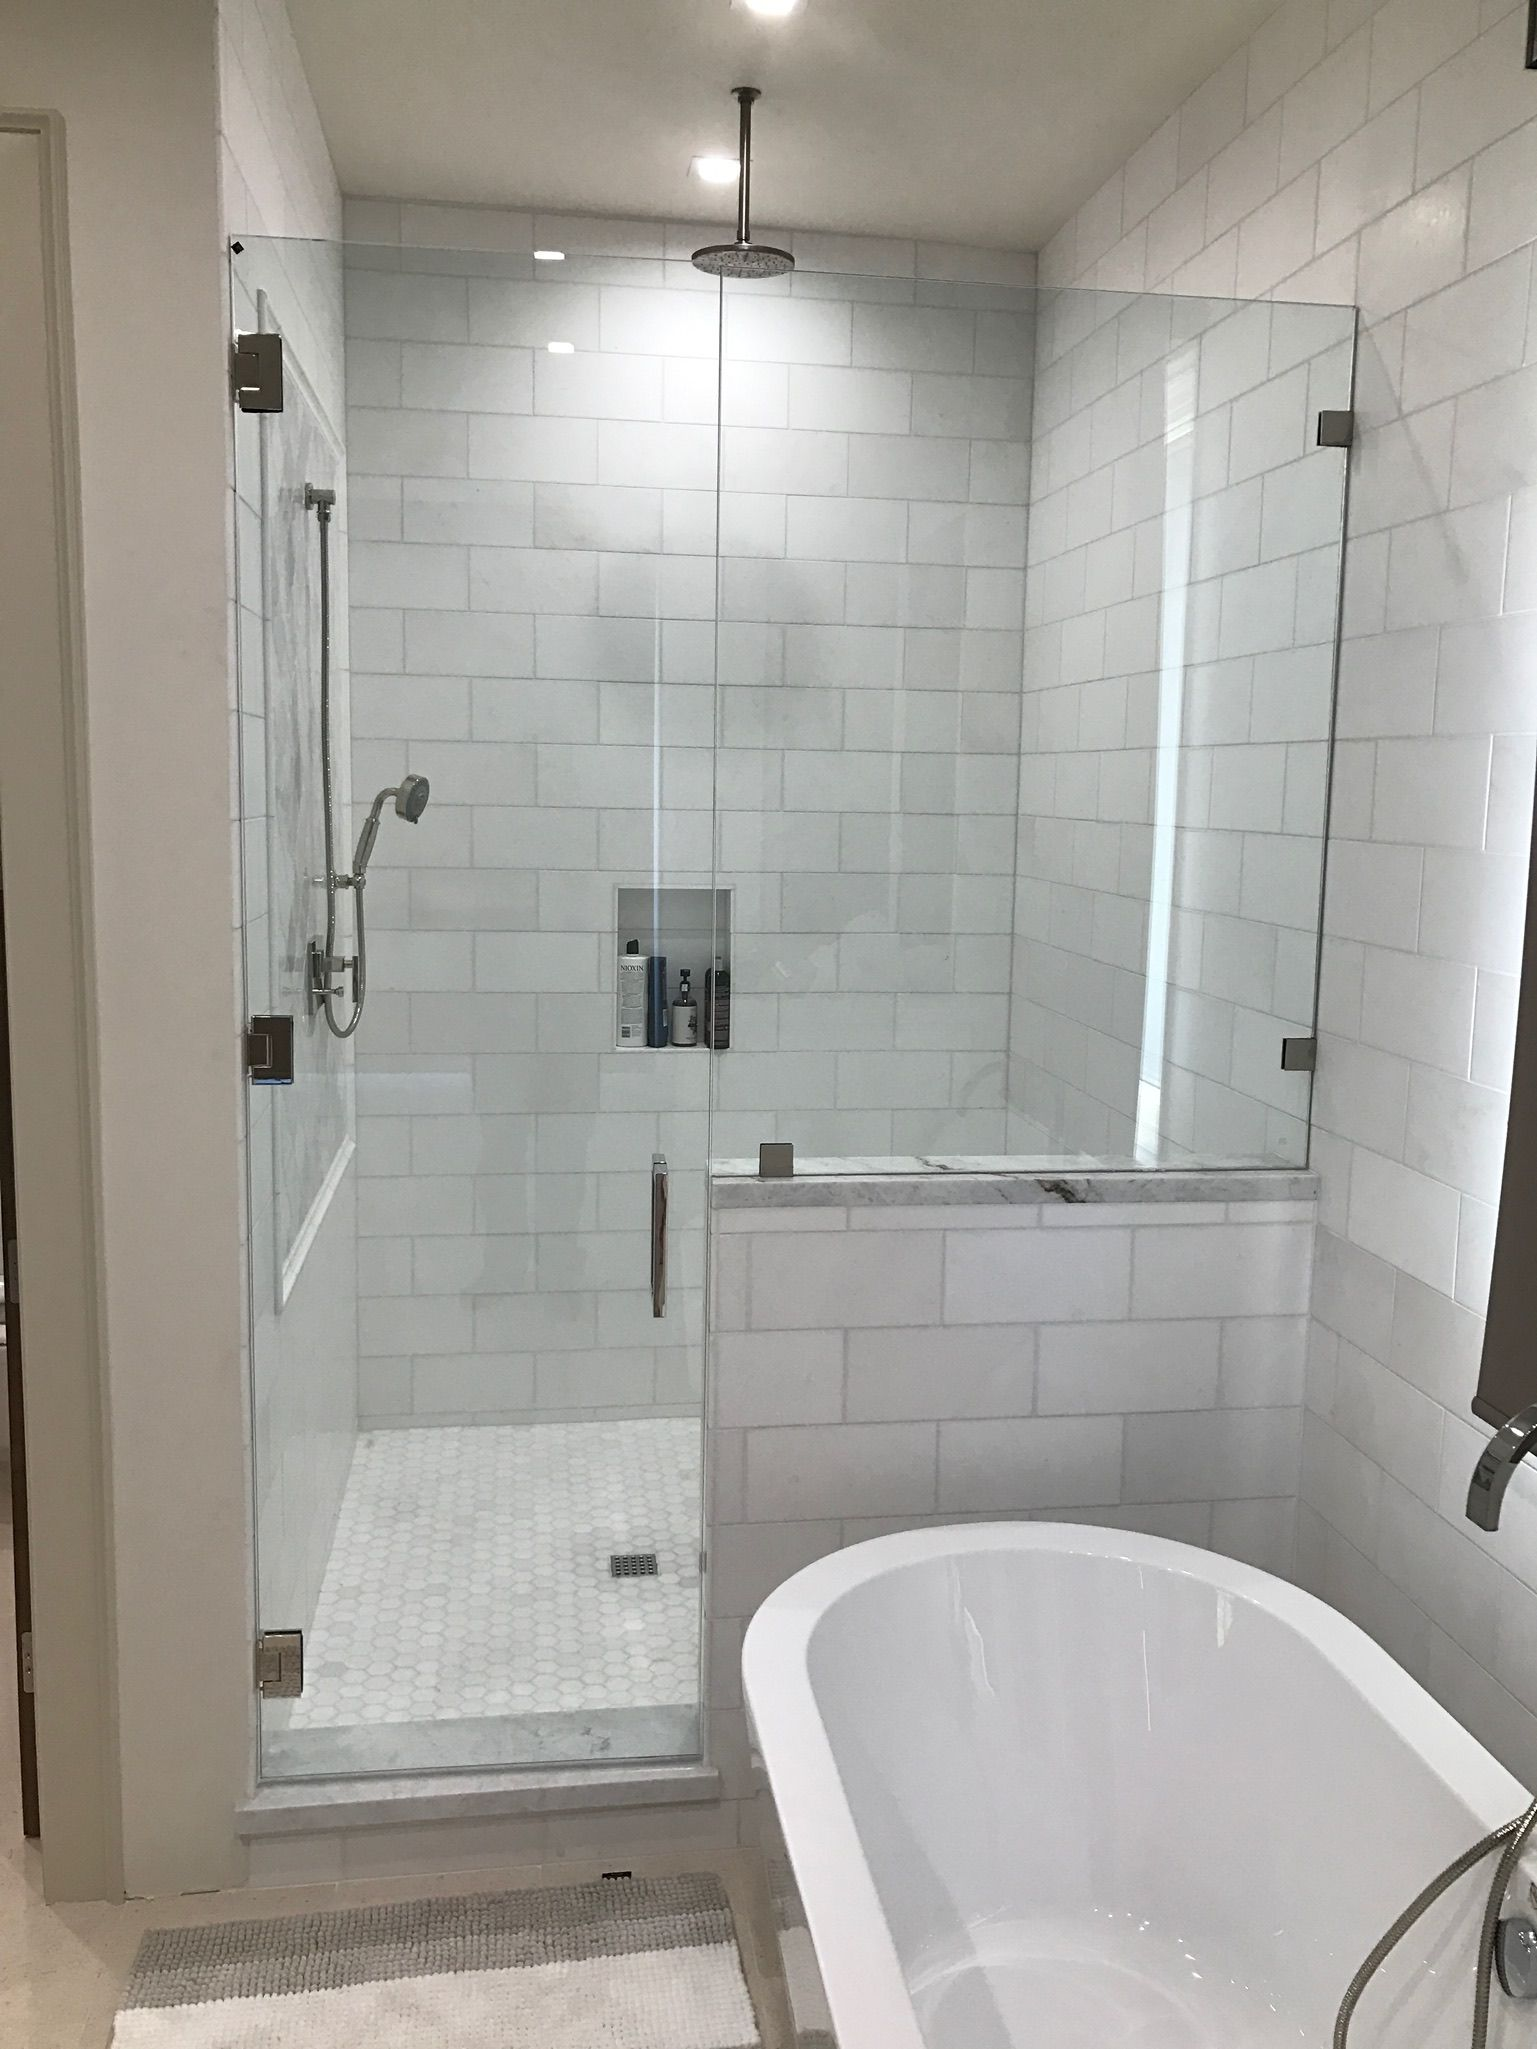 Corner Shower With Stand Alone Bathtub On The Side Bathroom Layout Small Bathroom Layout Bathroom Design Layout